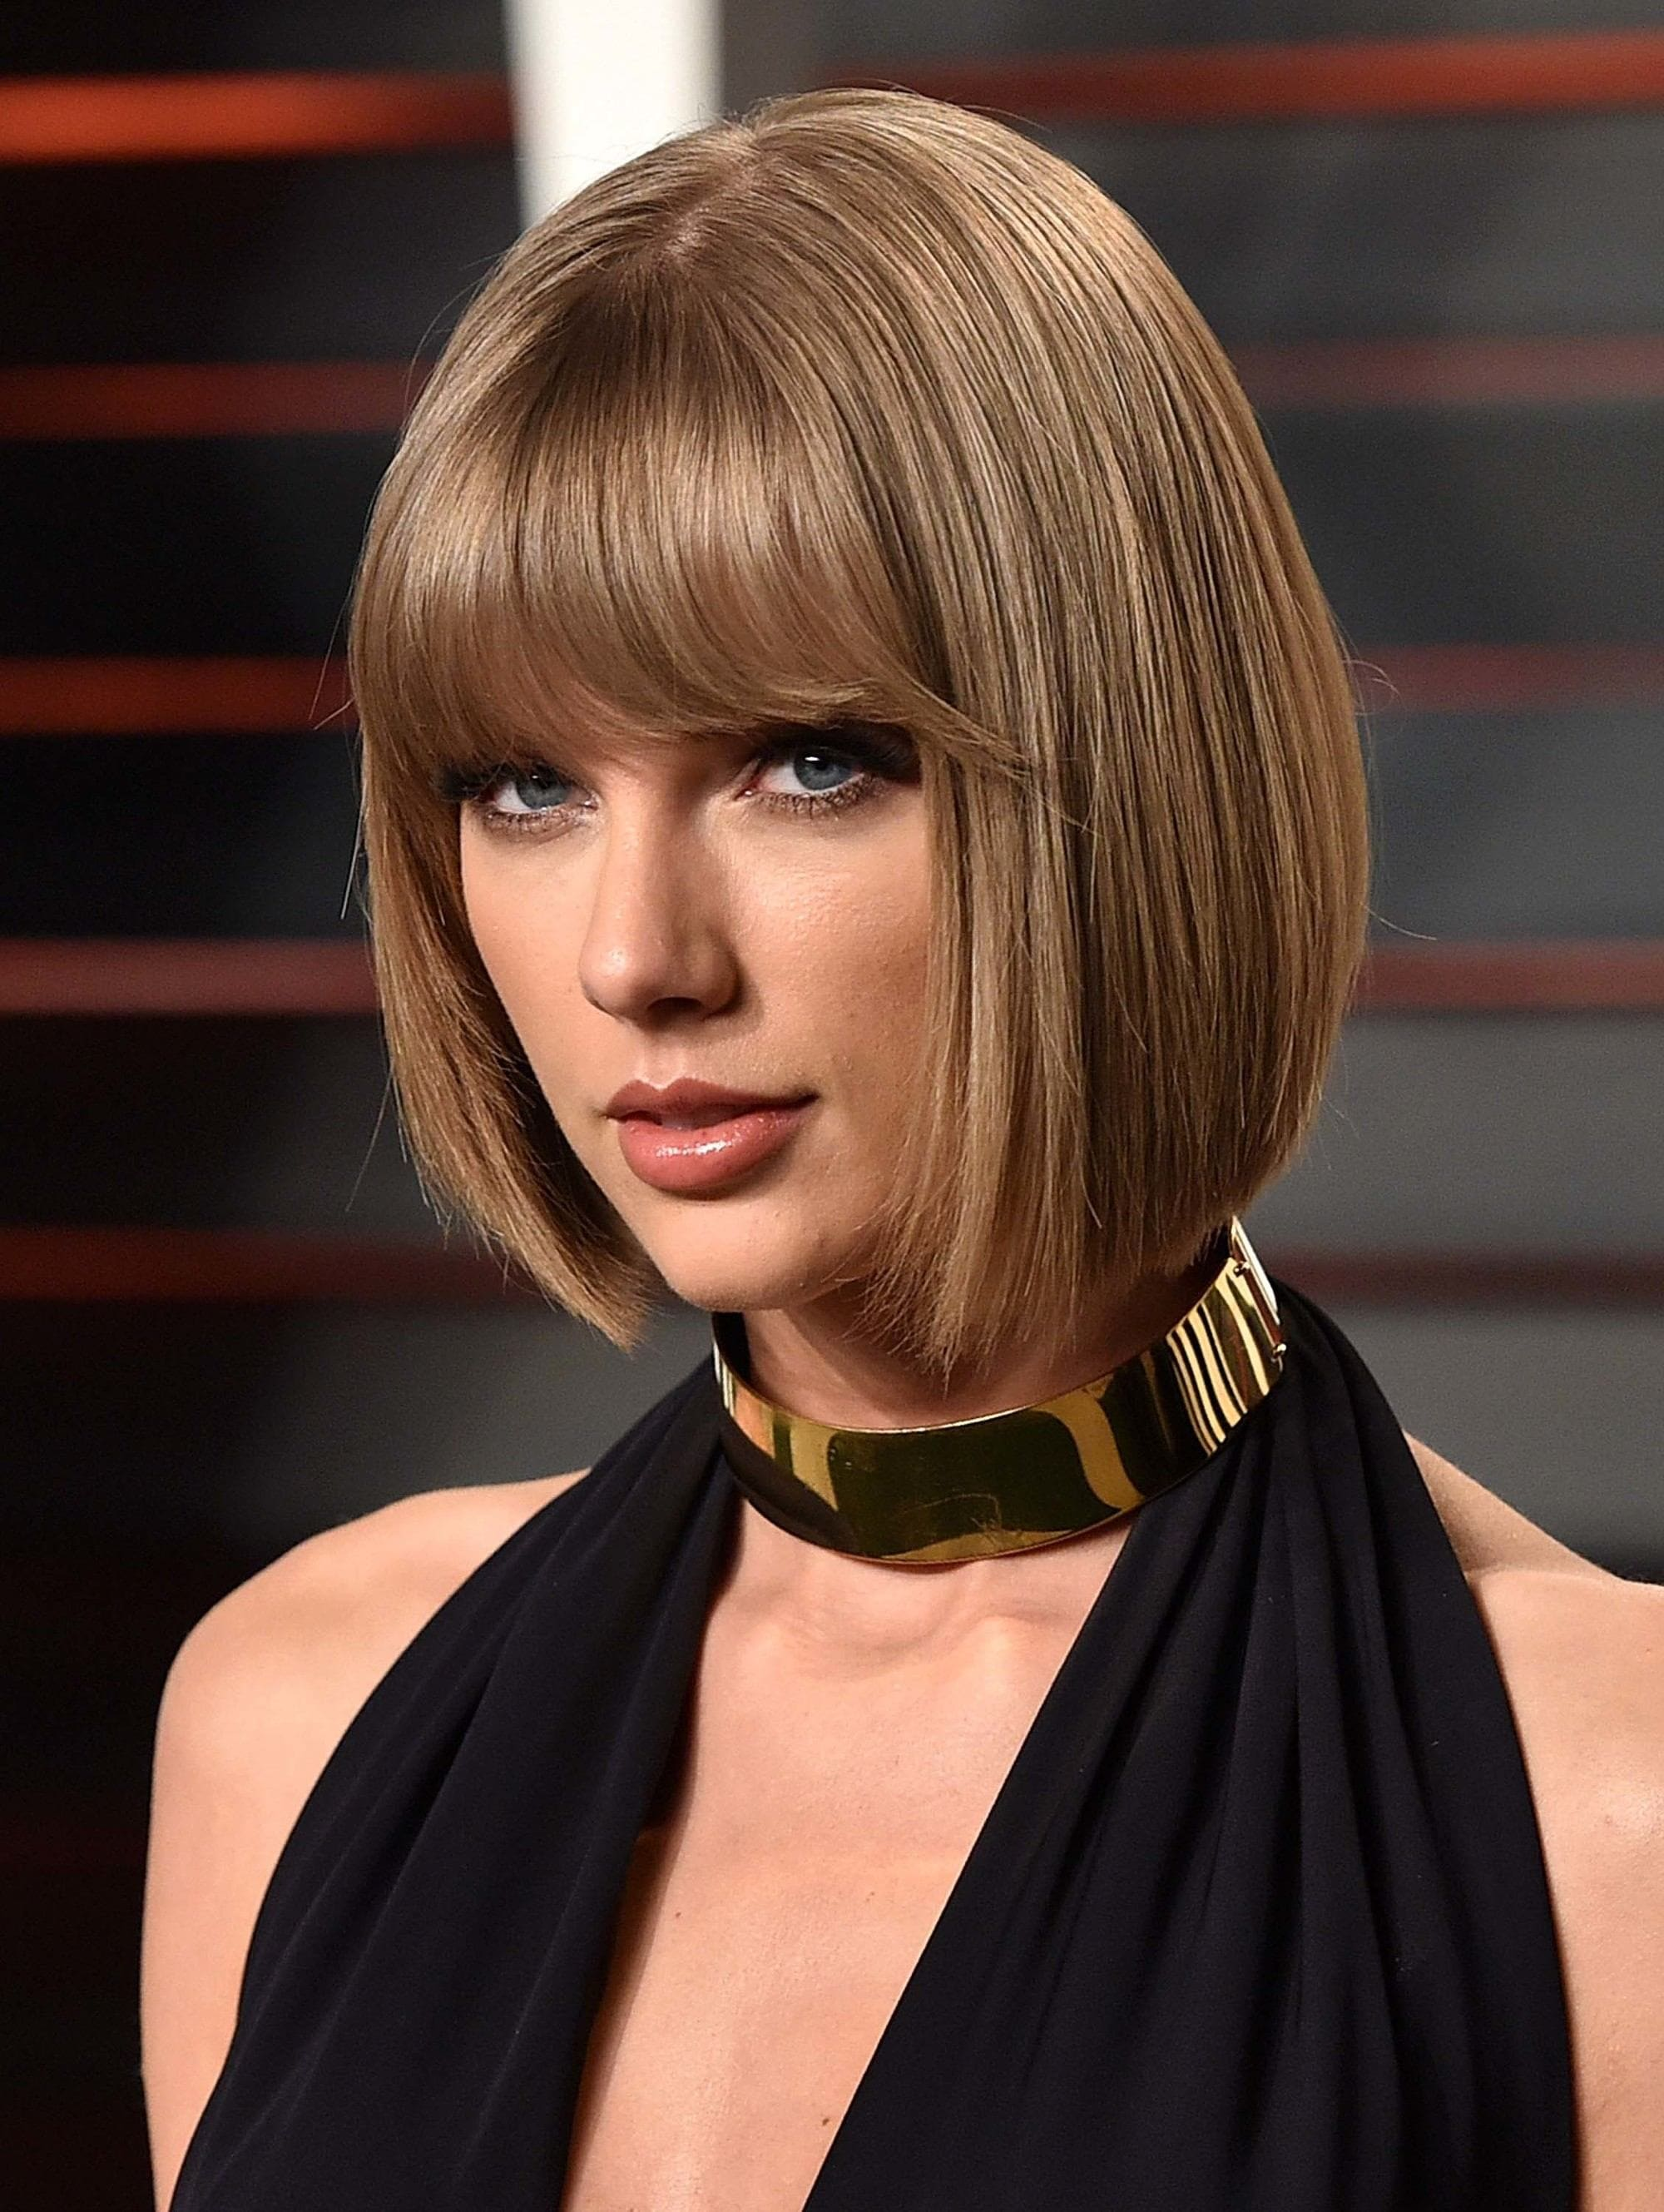 The Best Hairstyles With Bangs Inspired By Celebrities All Things Hair